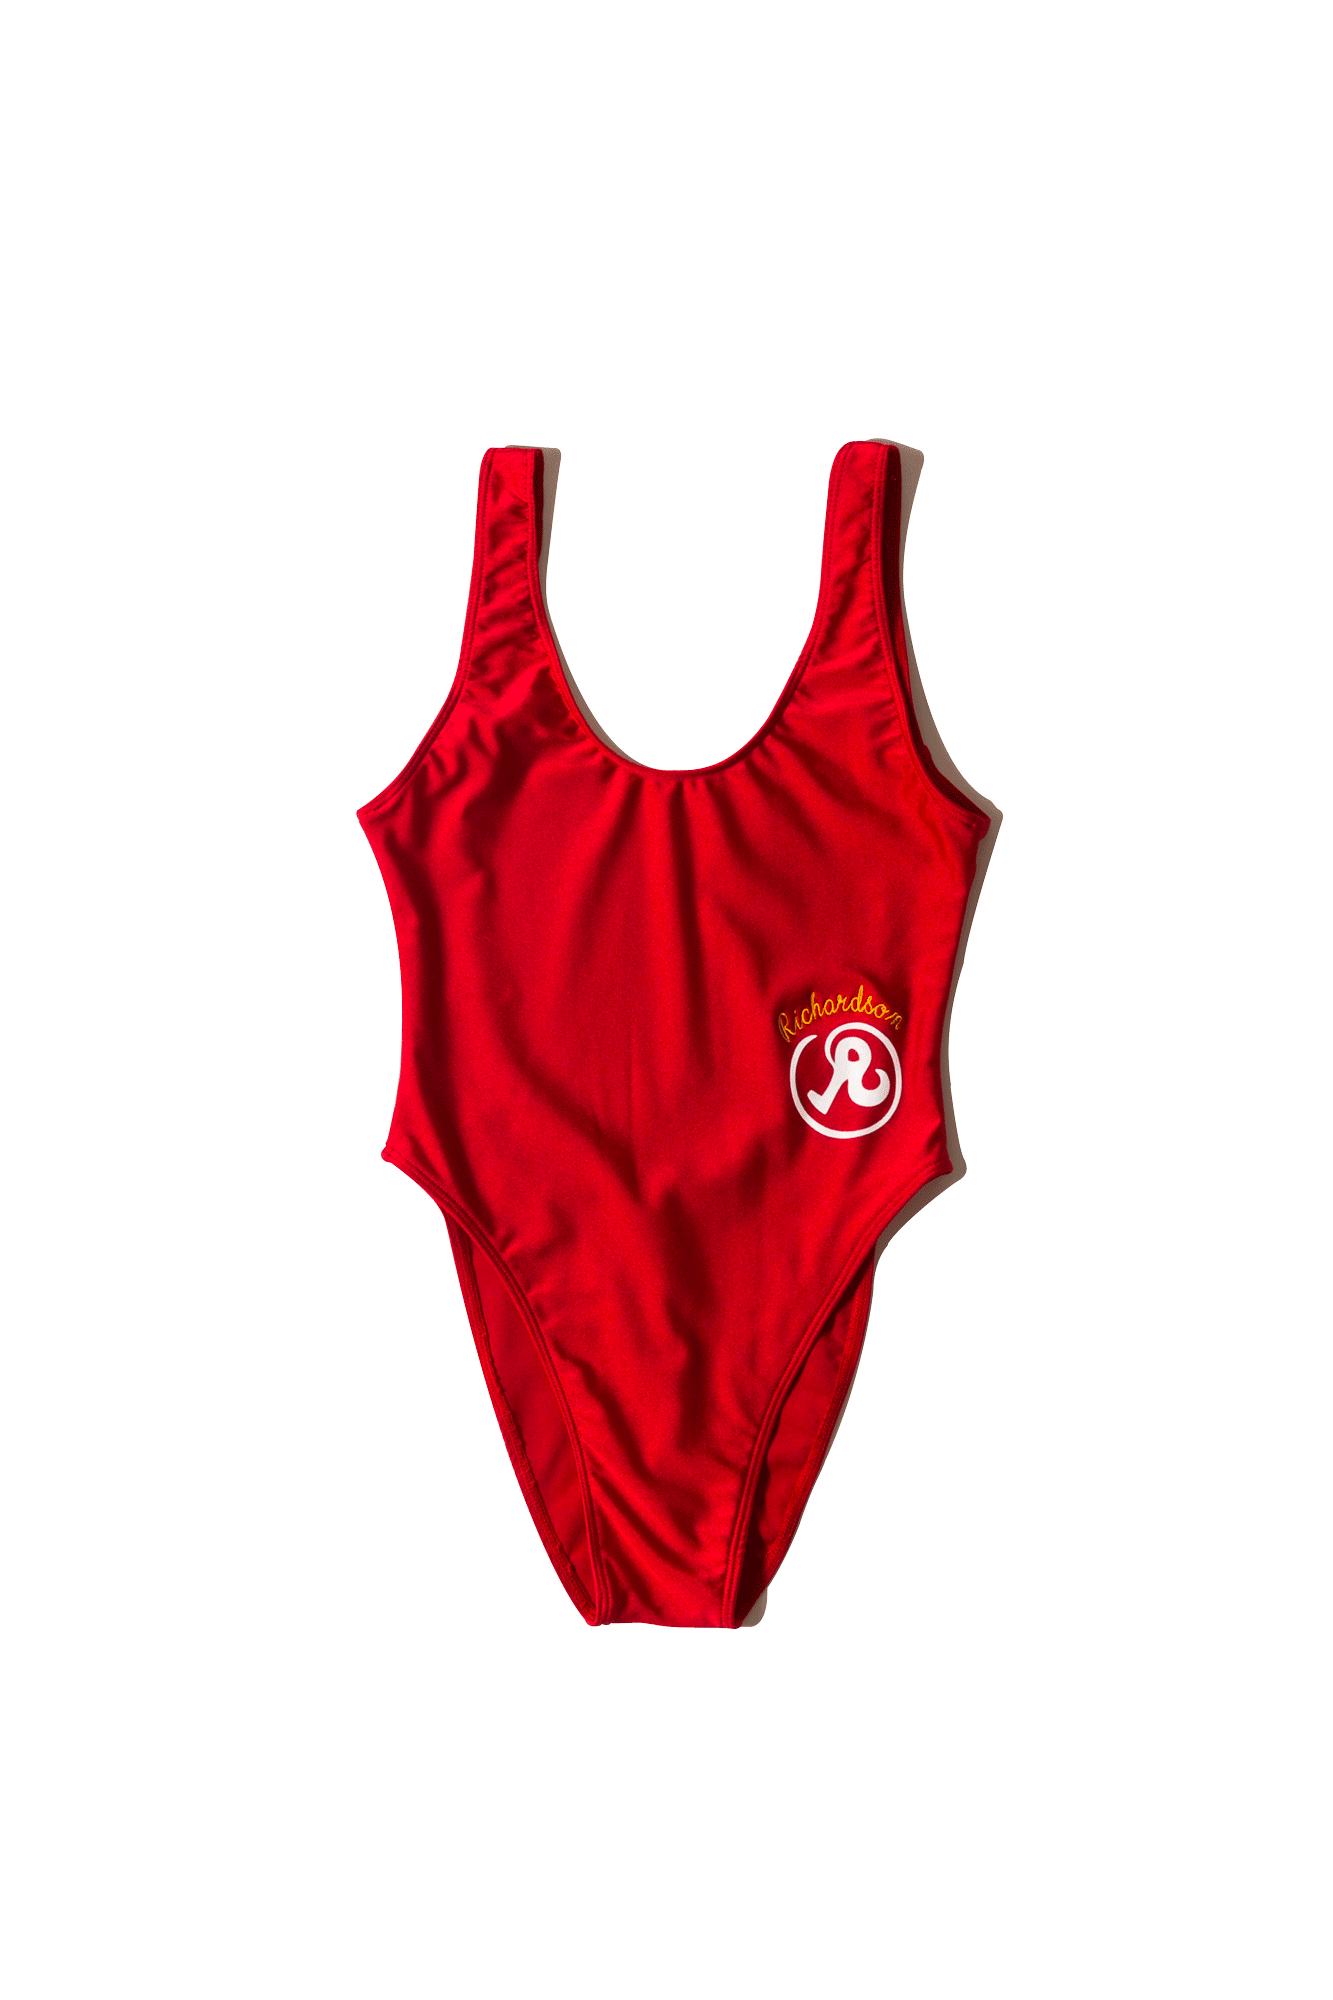 Richardson Mag Costumi da bagno One Piece Swimsuit Rosso 6211120000#000#RED#S - One Block Down